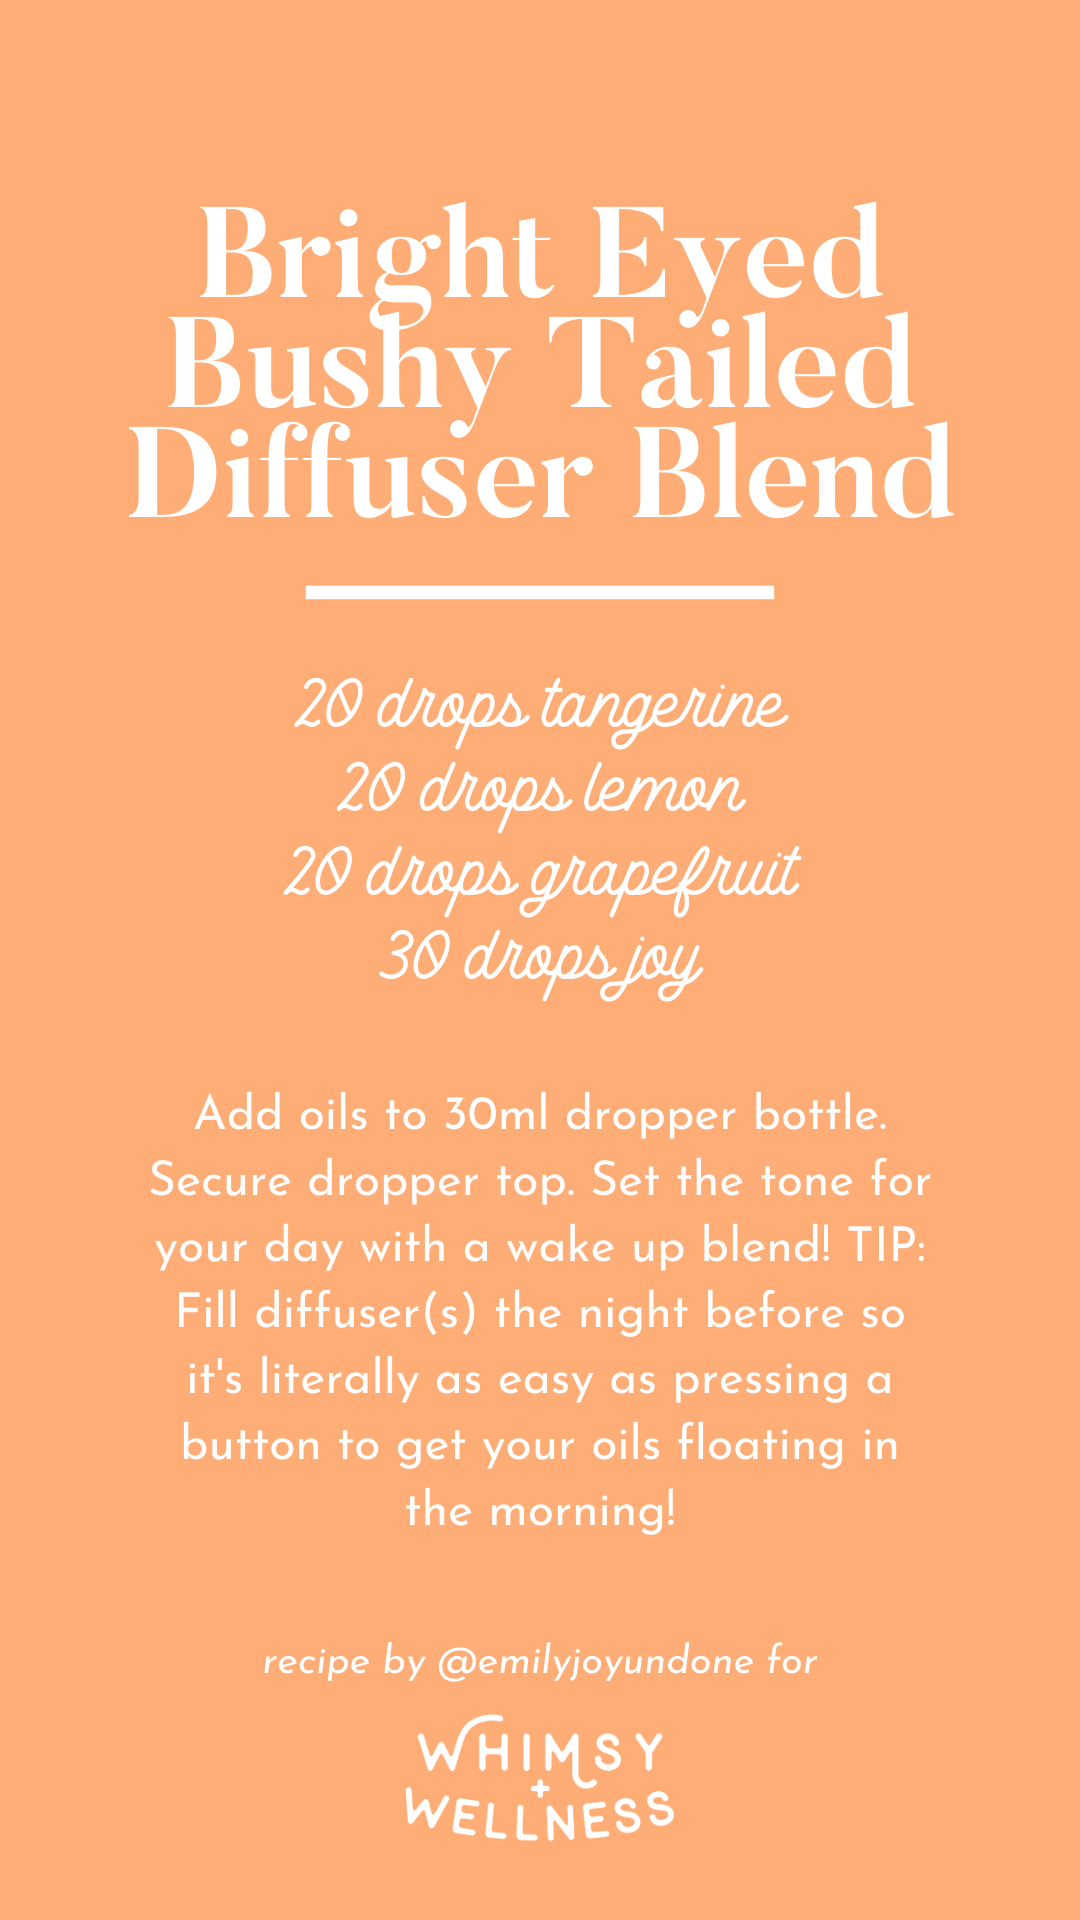 Bright Eyed Bushy Tailed Diffuser Blend using Whimsy + Wellness Wild Child Set and Young Living Essential Oils